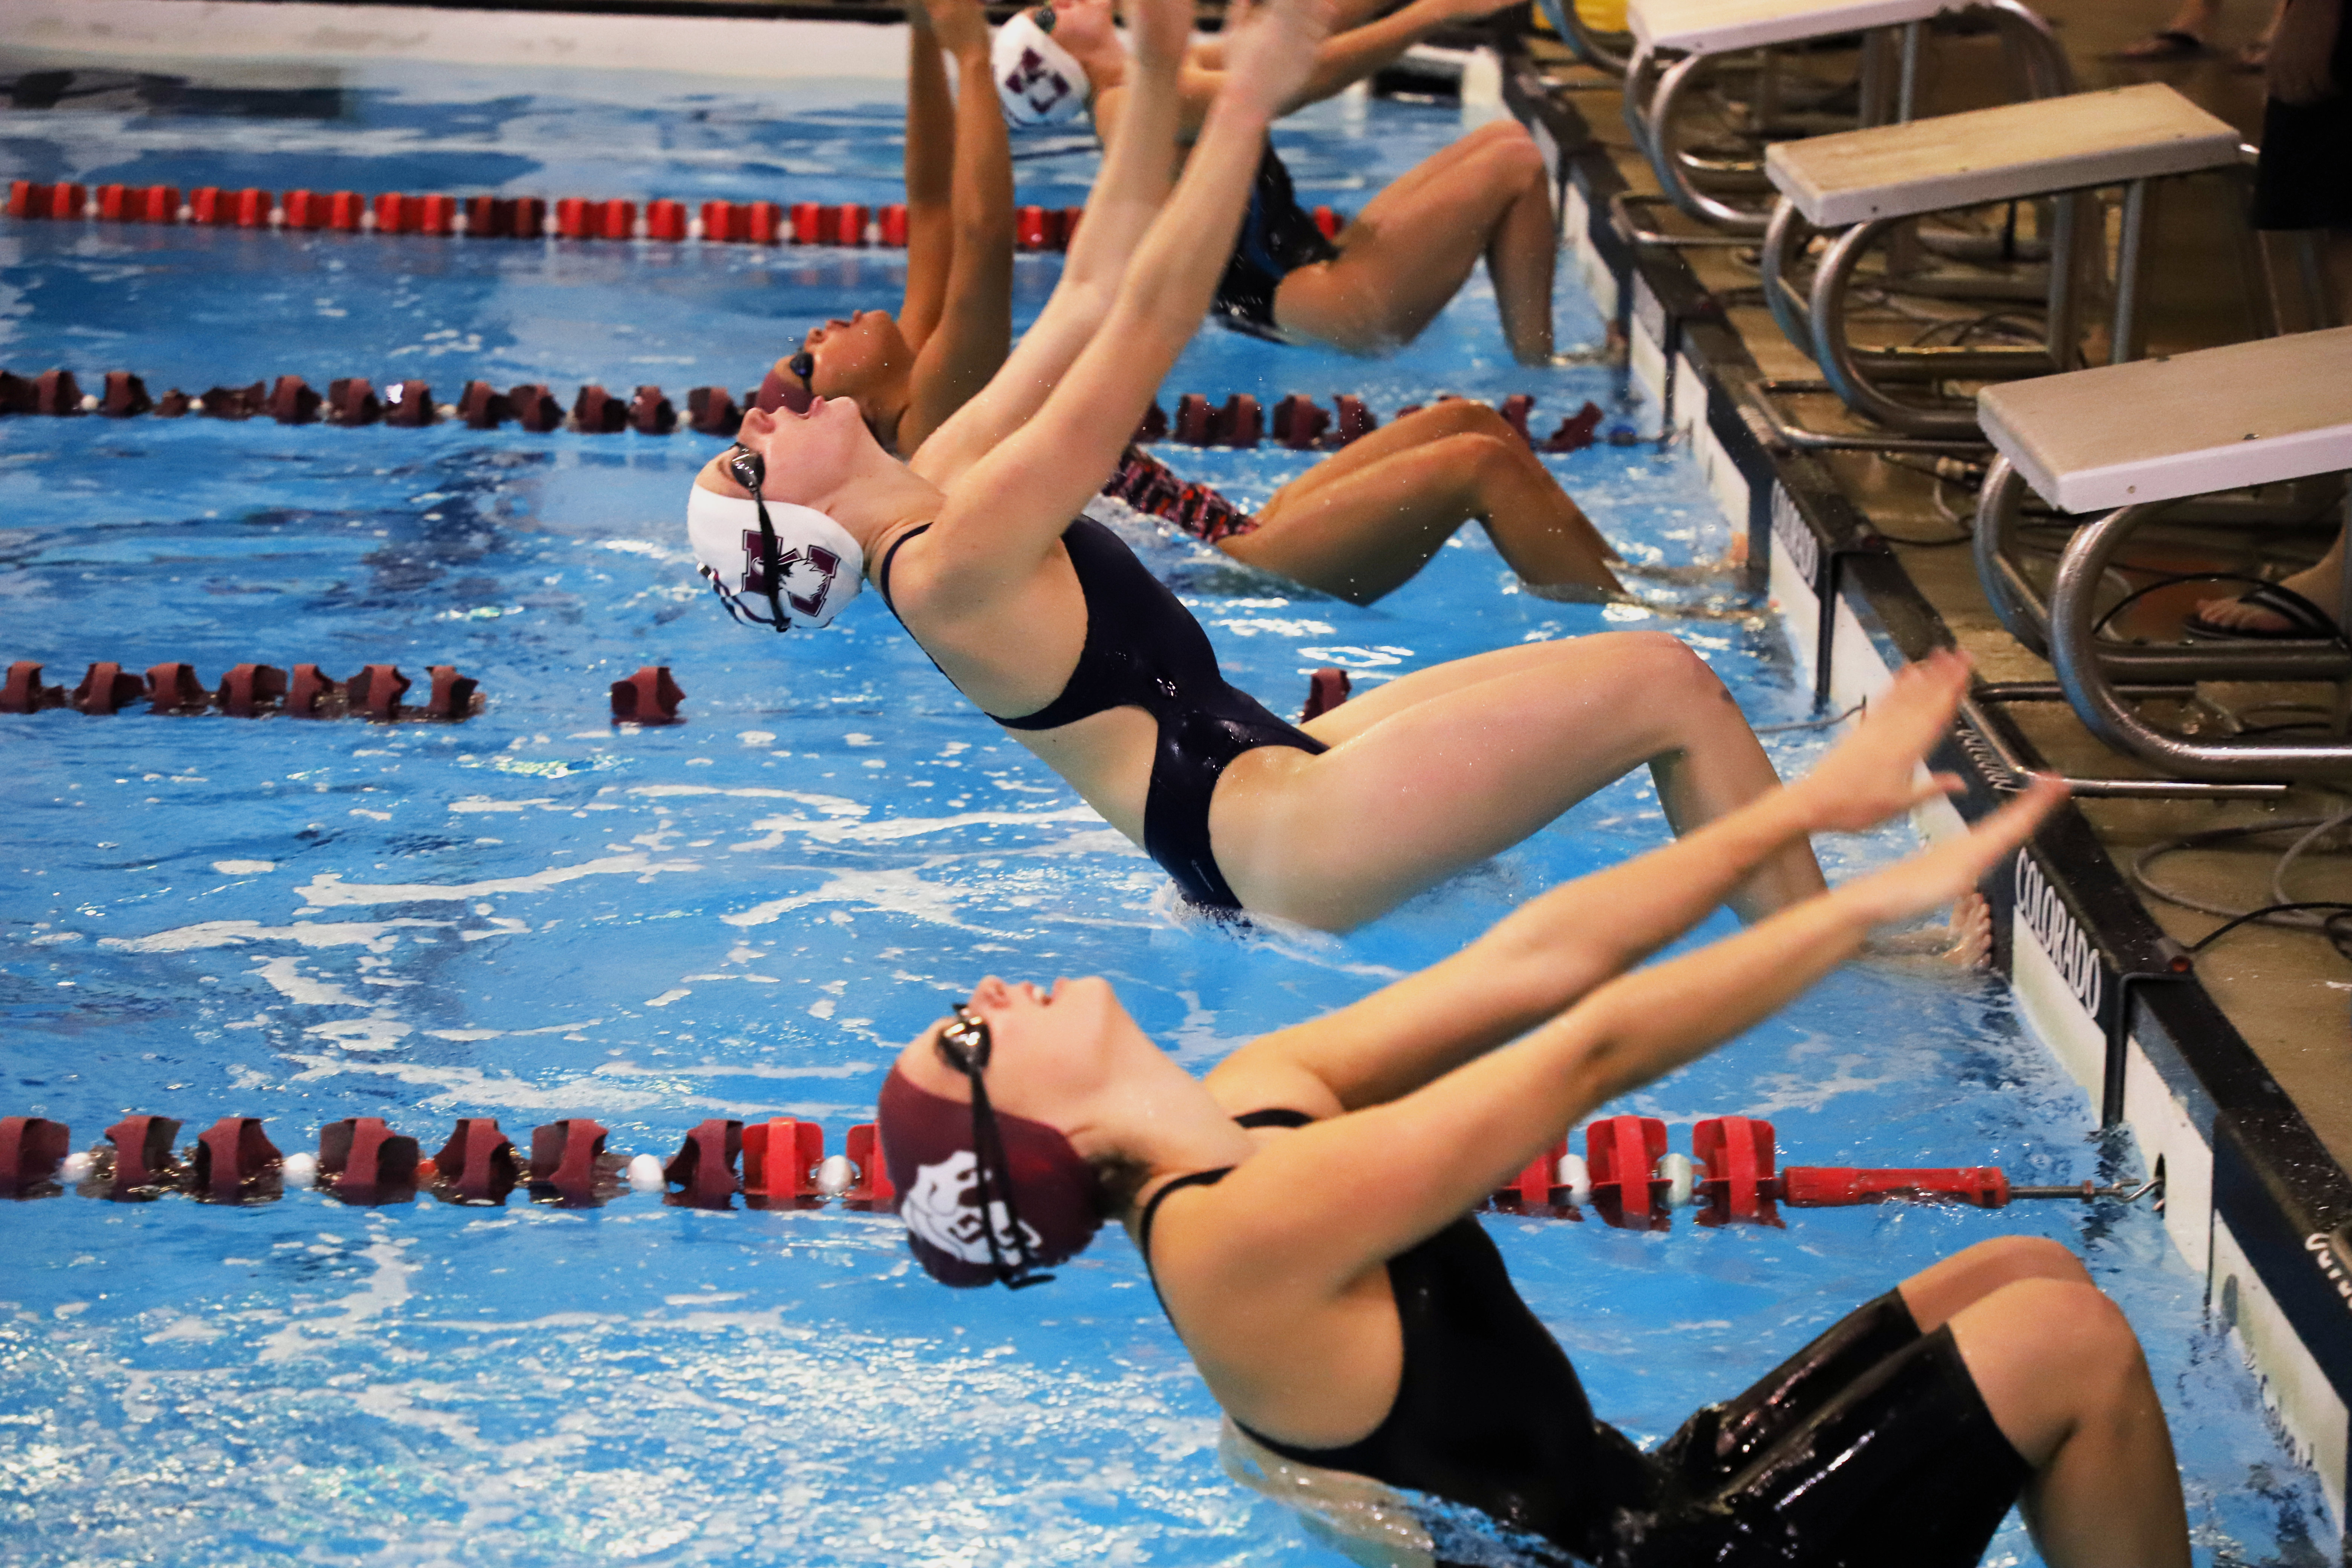 Making a splash Provincial competition goes swimmingly for the McMaster' women's swimming team as they bring home team bronze at the 2018 OUA Swimming Championships